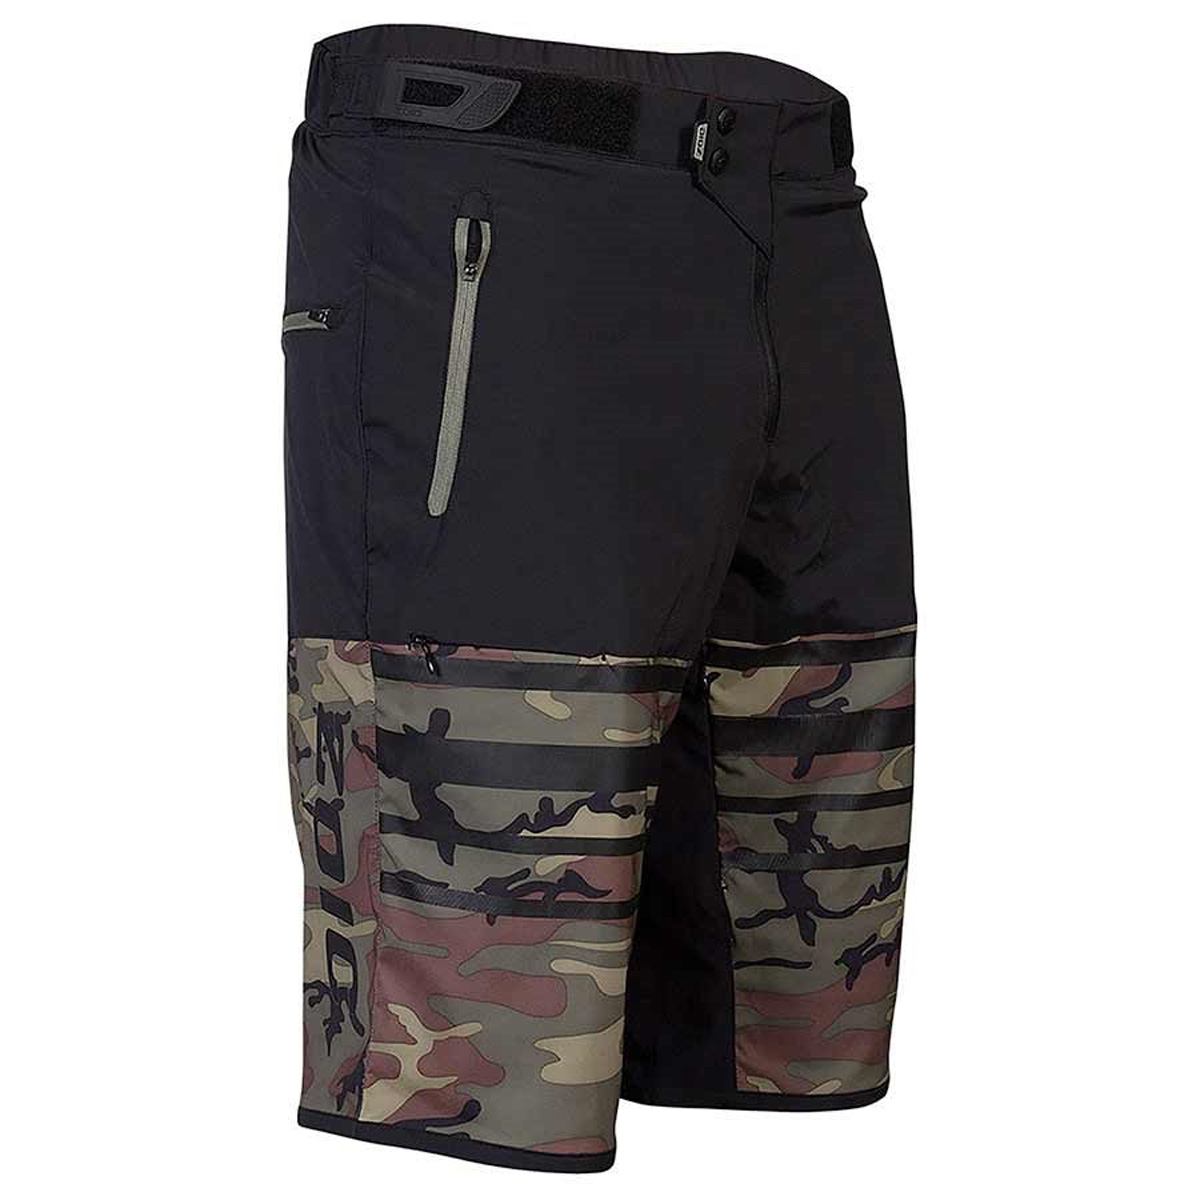 Zoic Men's Contraband Mountain Bike Shorts - 1108NMNL